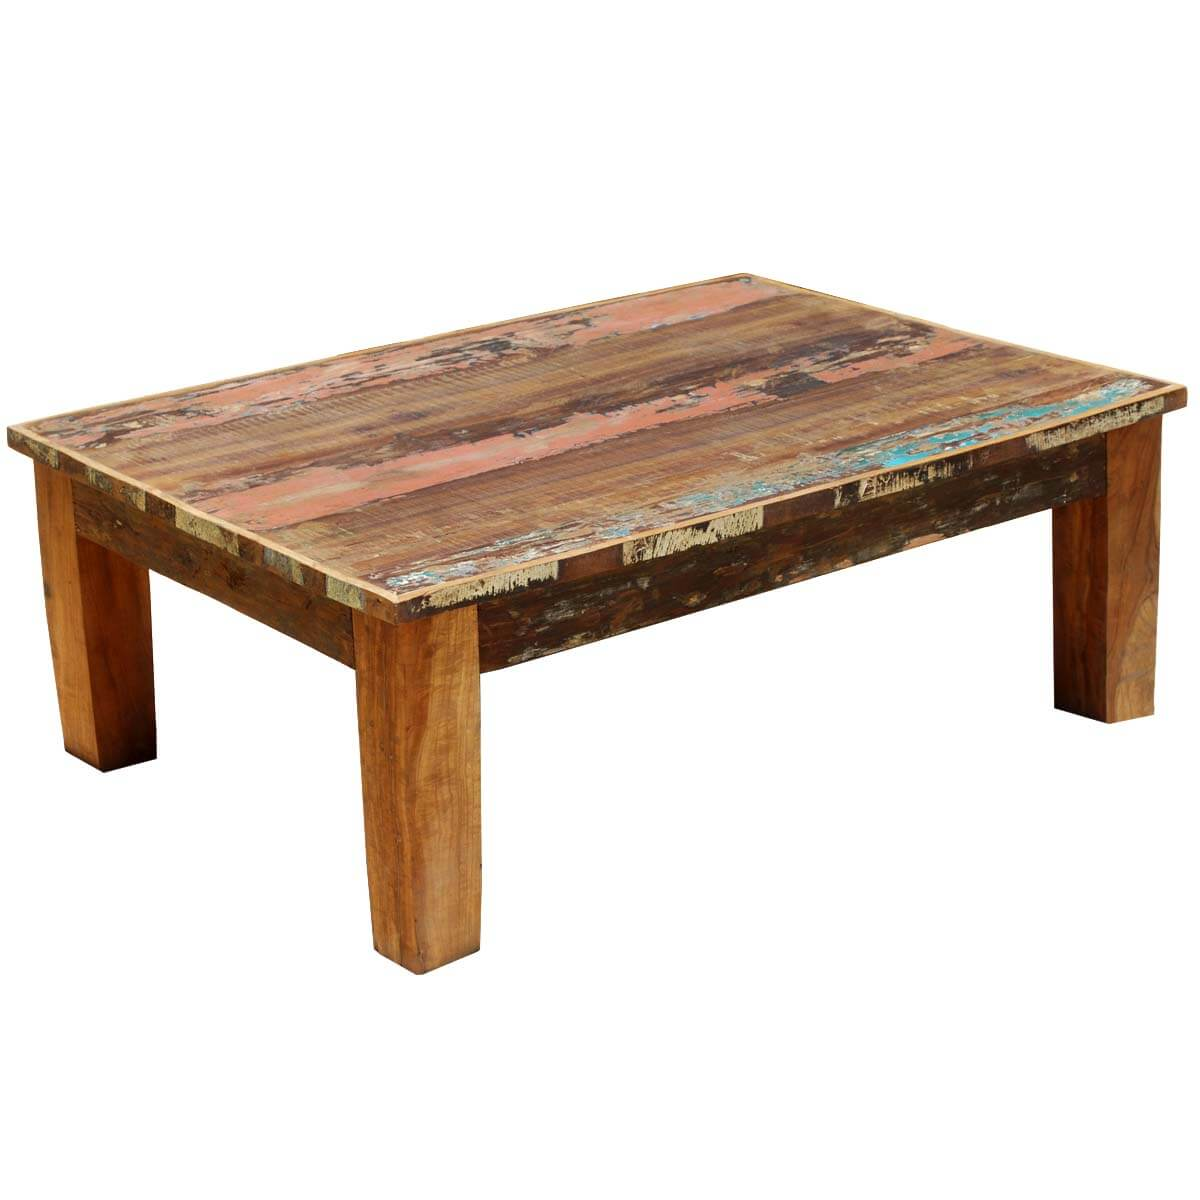 Appalachian rustic mixed reclaimed wood coffee table for Reclaimed teak wood coffee table